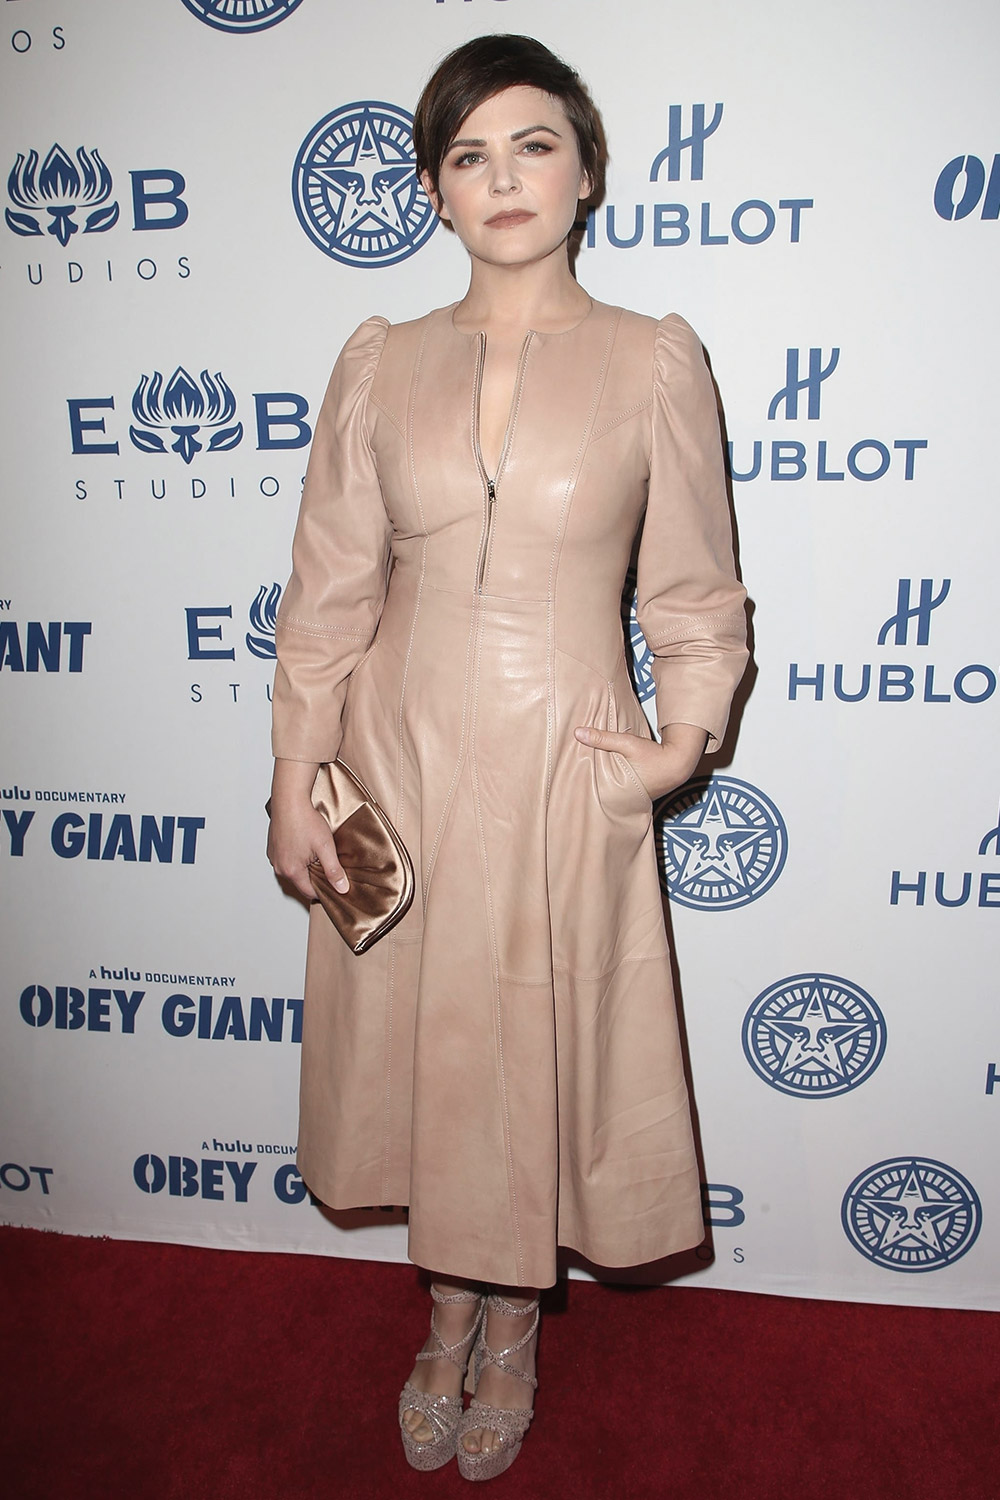 Ginnifer Goodwin attends Hulu's 'Obey Giant' Premiere